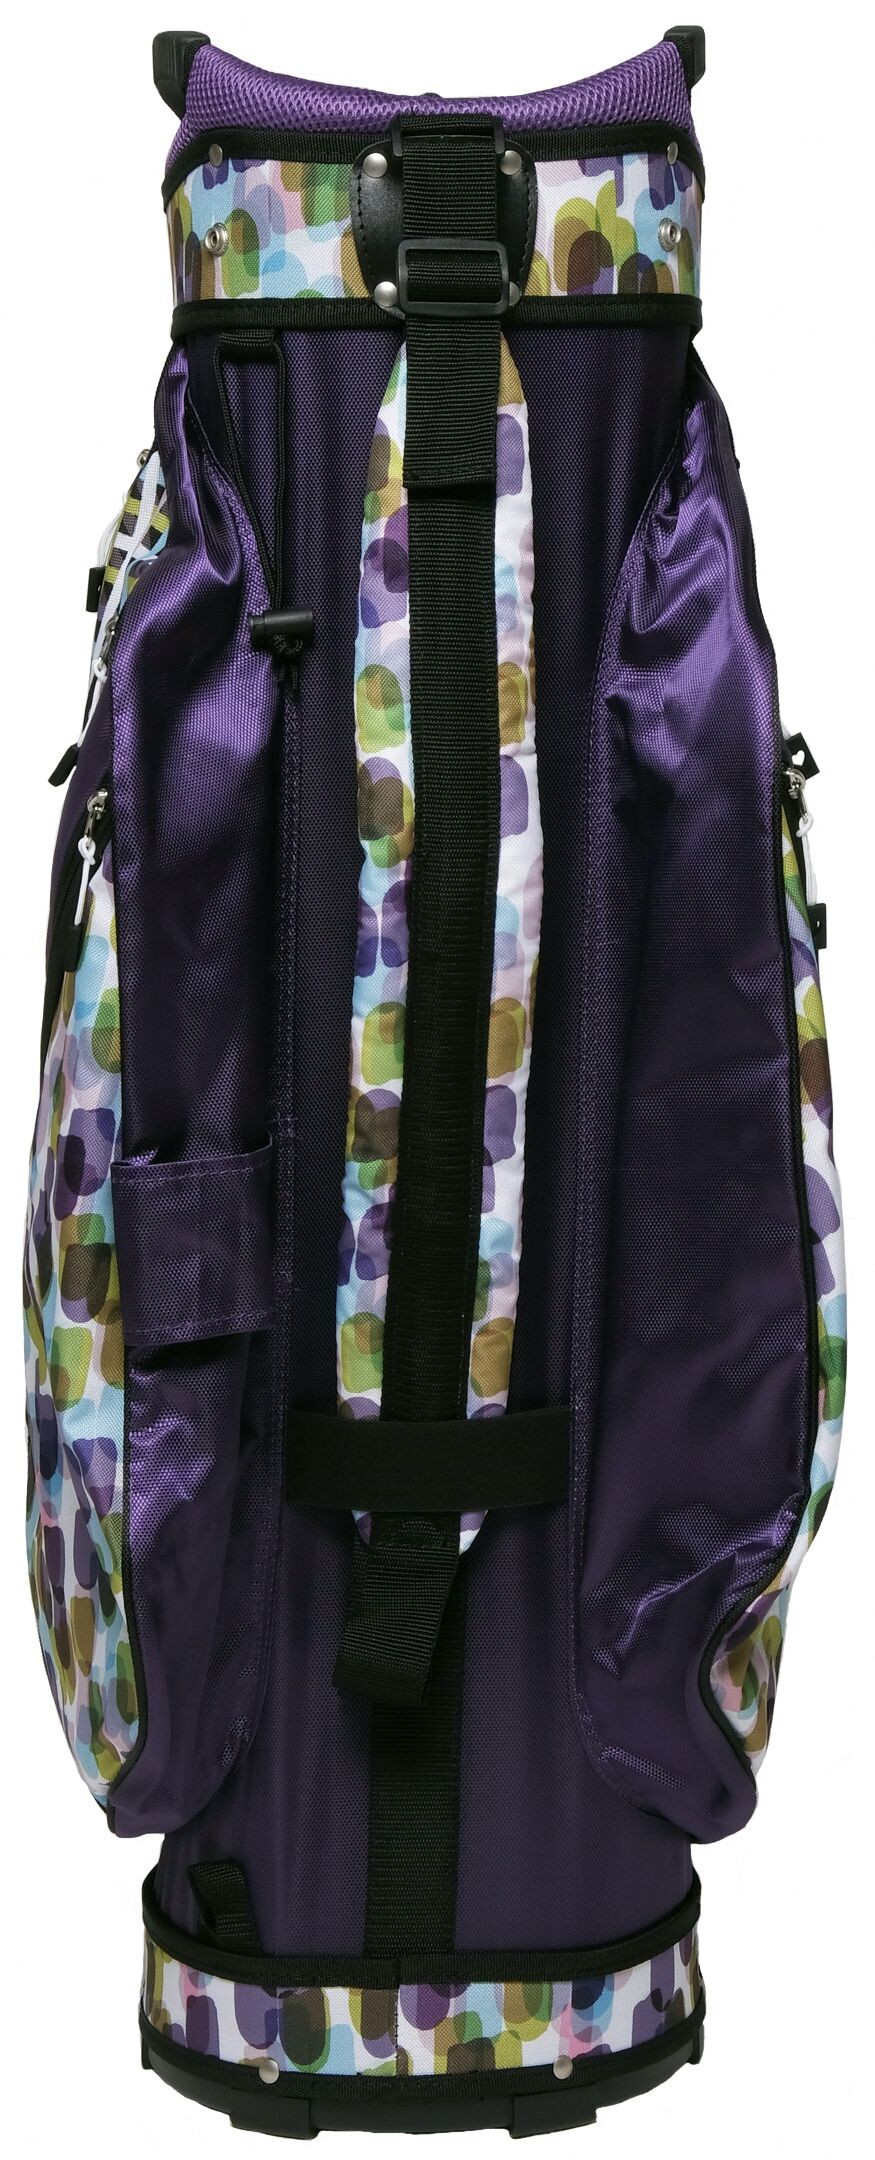 GEO MIX Women's Golf Bag